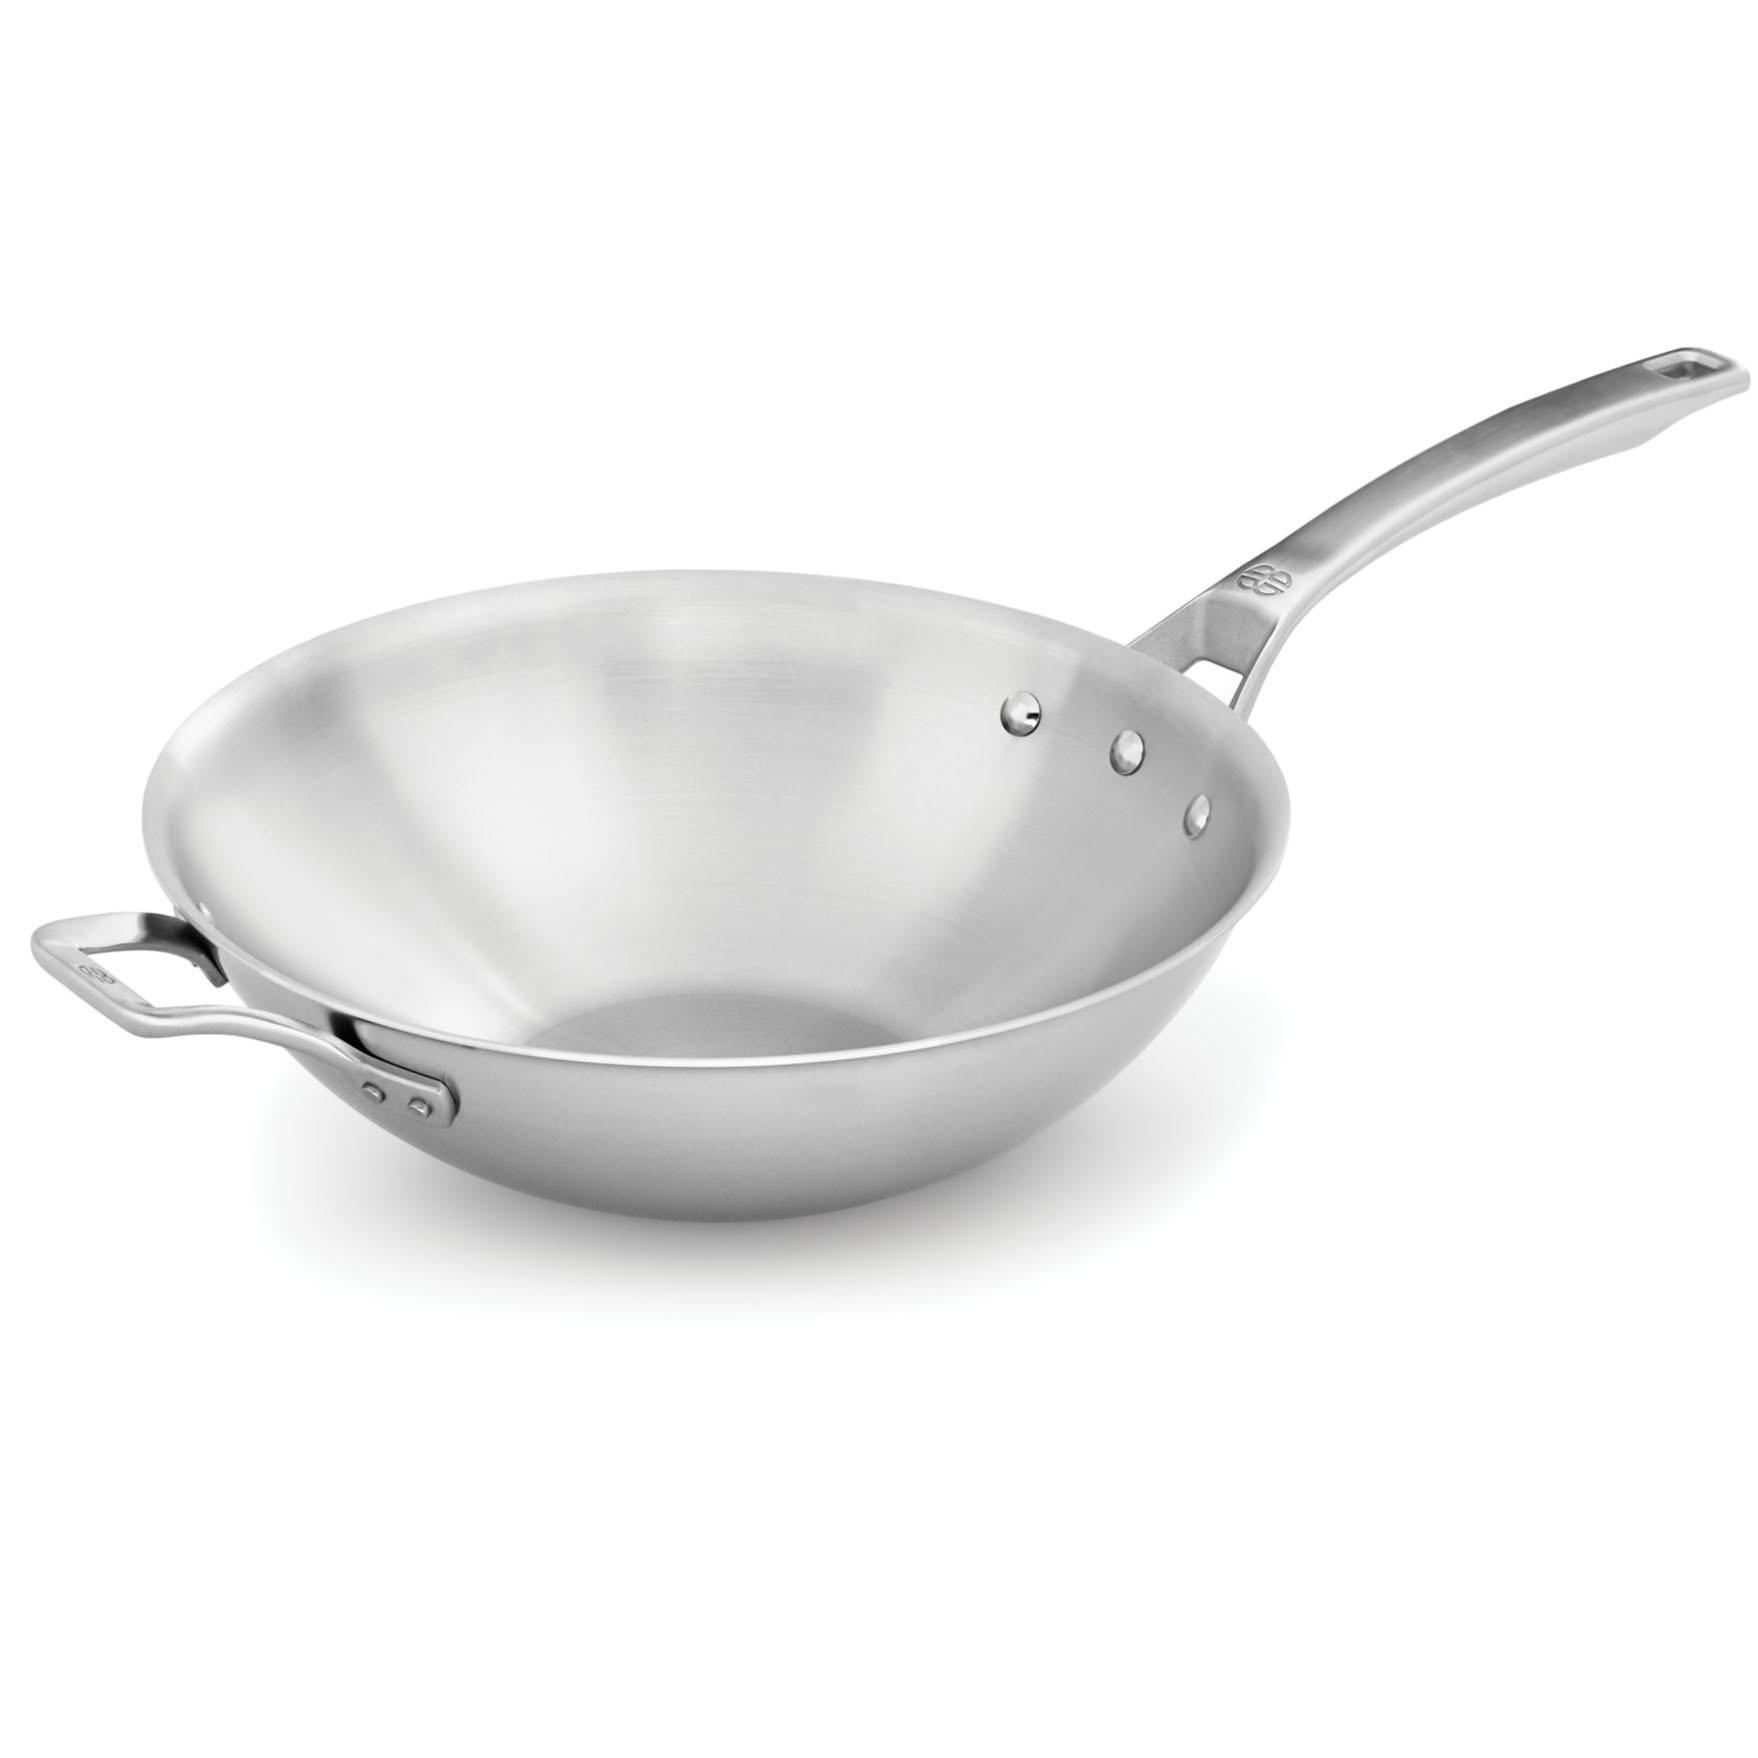 Calphalon 12in Signature Stainless Steel Flat-Bottom Wok